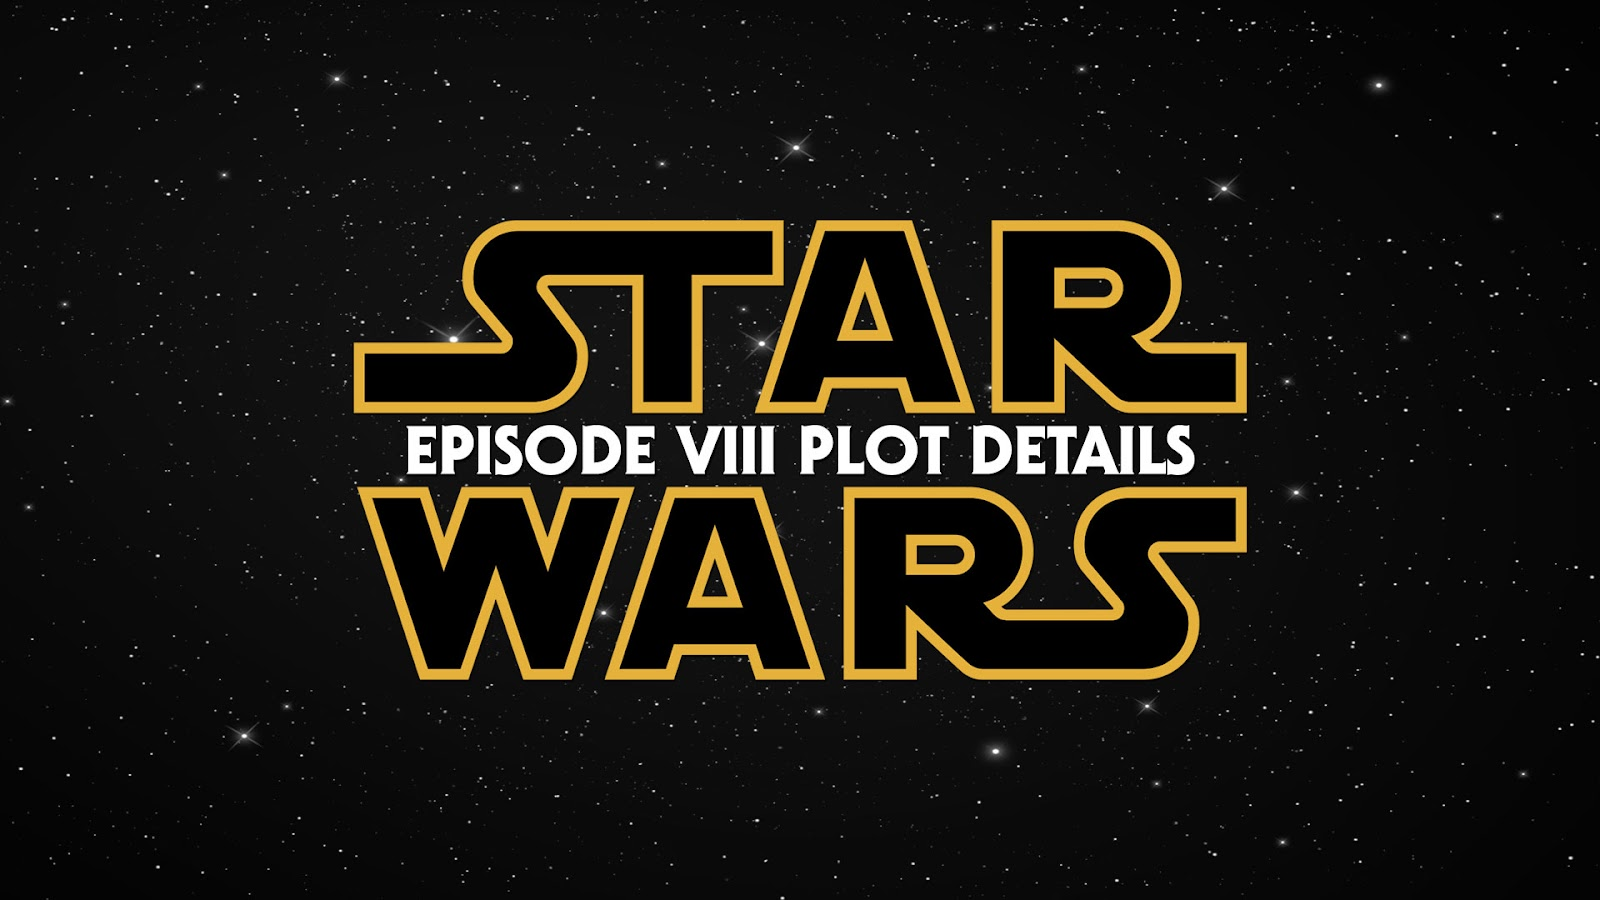 Star Wars Episode 8 plot points